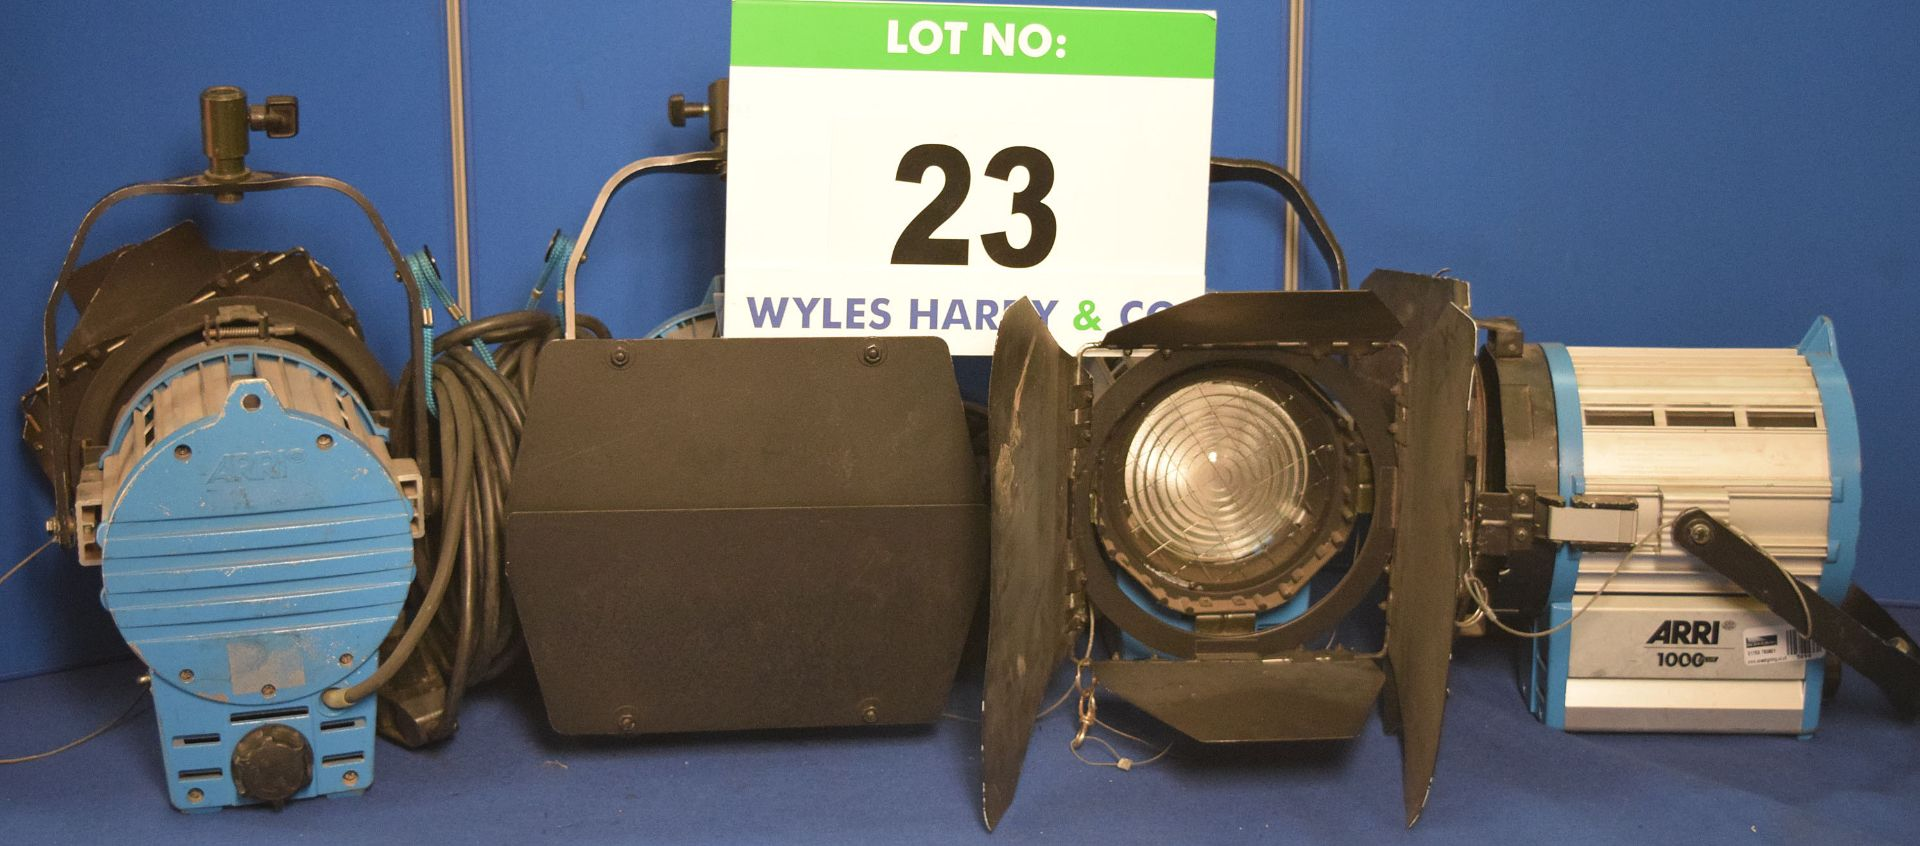 Lot 23 - Four ARRI 1000 Plus 1000W Lights each with fitted Barn Doors, Stirrup Mount and Switched Power Feed